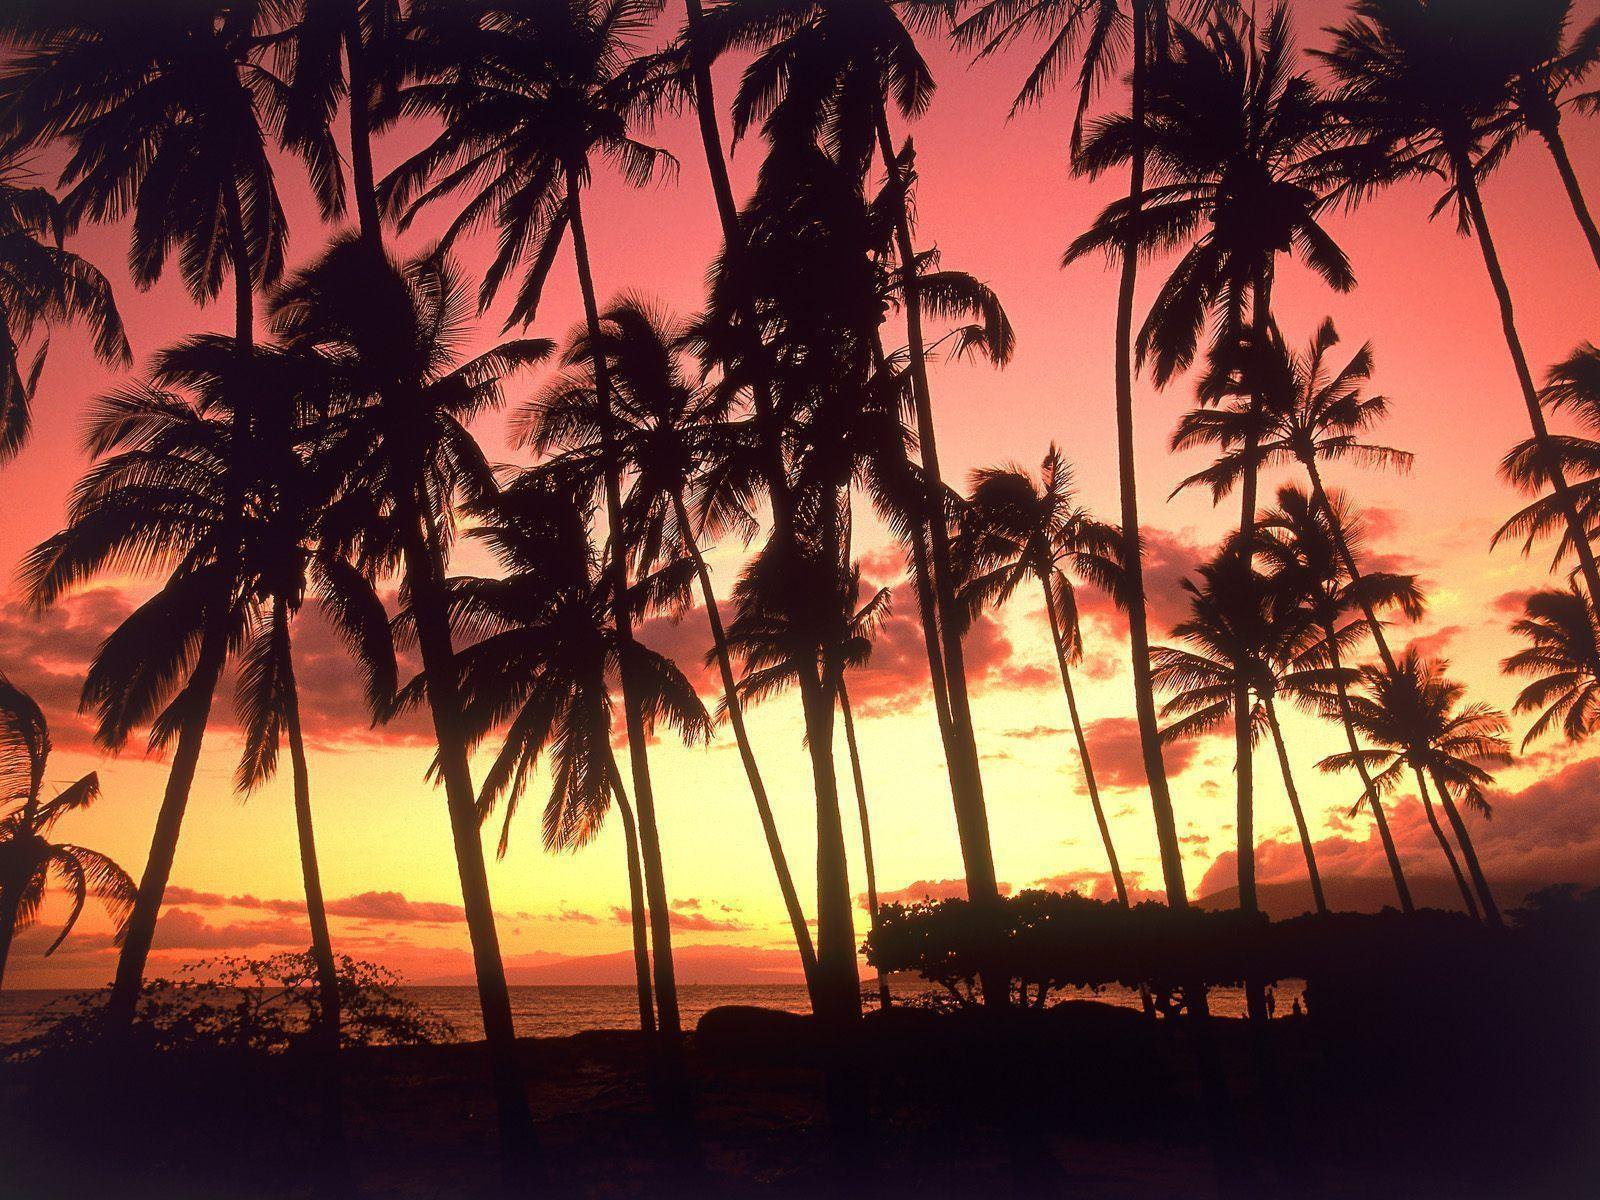 Hd Tropical Island Beach Paradise Wallpapers And Backgrounds: Tropical Island Sunset Wallpapers